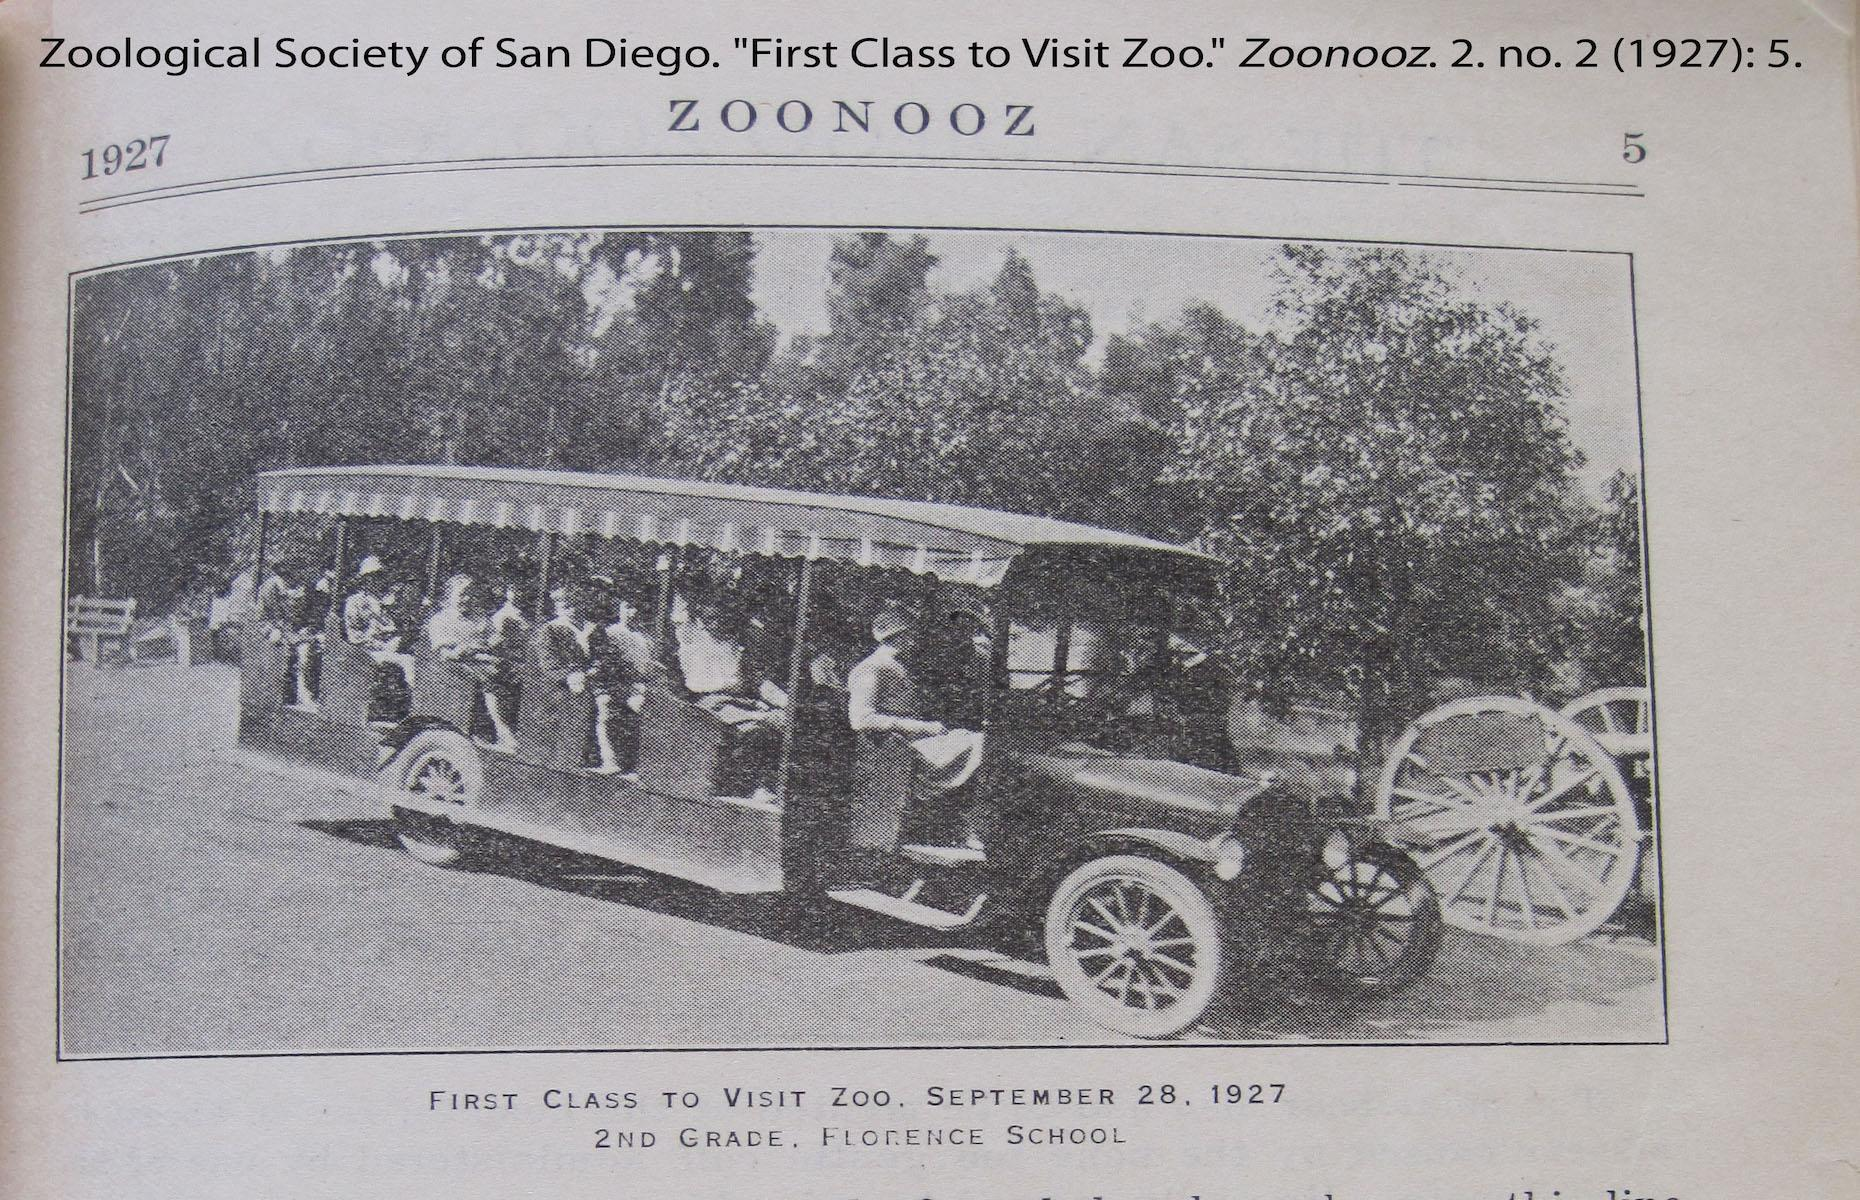 Slide 11 of 48: One of the country's first metropolitan zoos opened after founder Dr Harry Wegeforth was inspired by the idea at the 1915-16 Panama-California Exposition, which featured wild exotic animals. He founded the San Diego Zoological Society and convinced the city that it needed a zoo. San Diego Zoological Garden officially opened its doors in Balboa Park. One of its first animals was a Kodiak bear called Caesar. It was one of the first zoos to have open grotto enclosures and launched its first research faculty in 1927. Check out our city guide to San Diego.